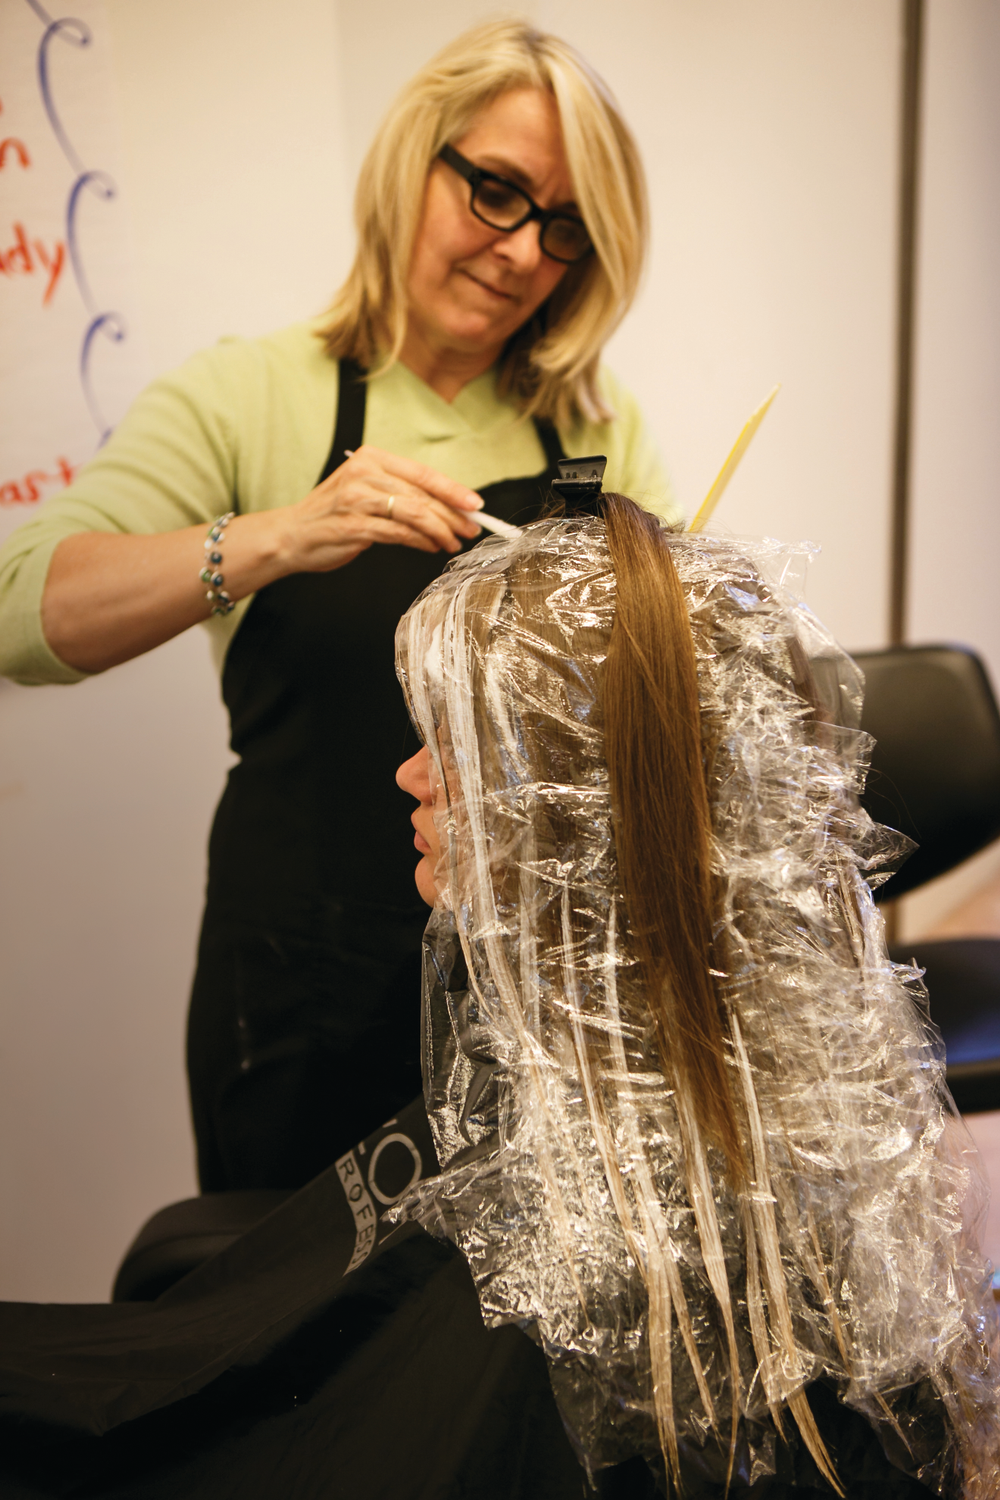 When balayage expert Nancy Braun first came across the French highlighting technique, she fell in love with the sun-kissed look and devoted herself to converting all her foil clients.